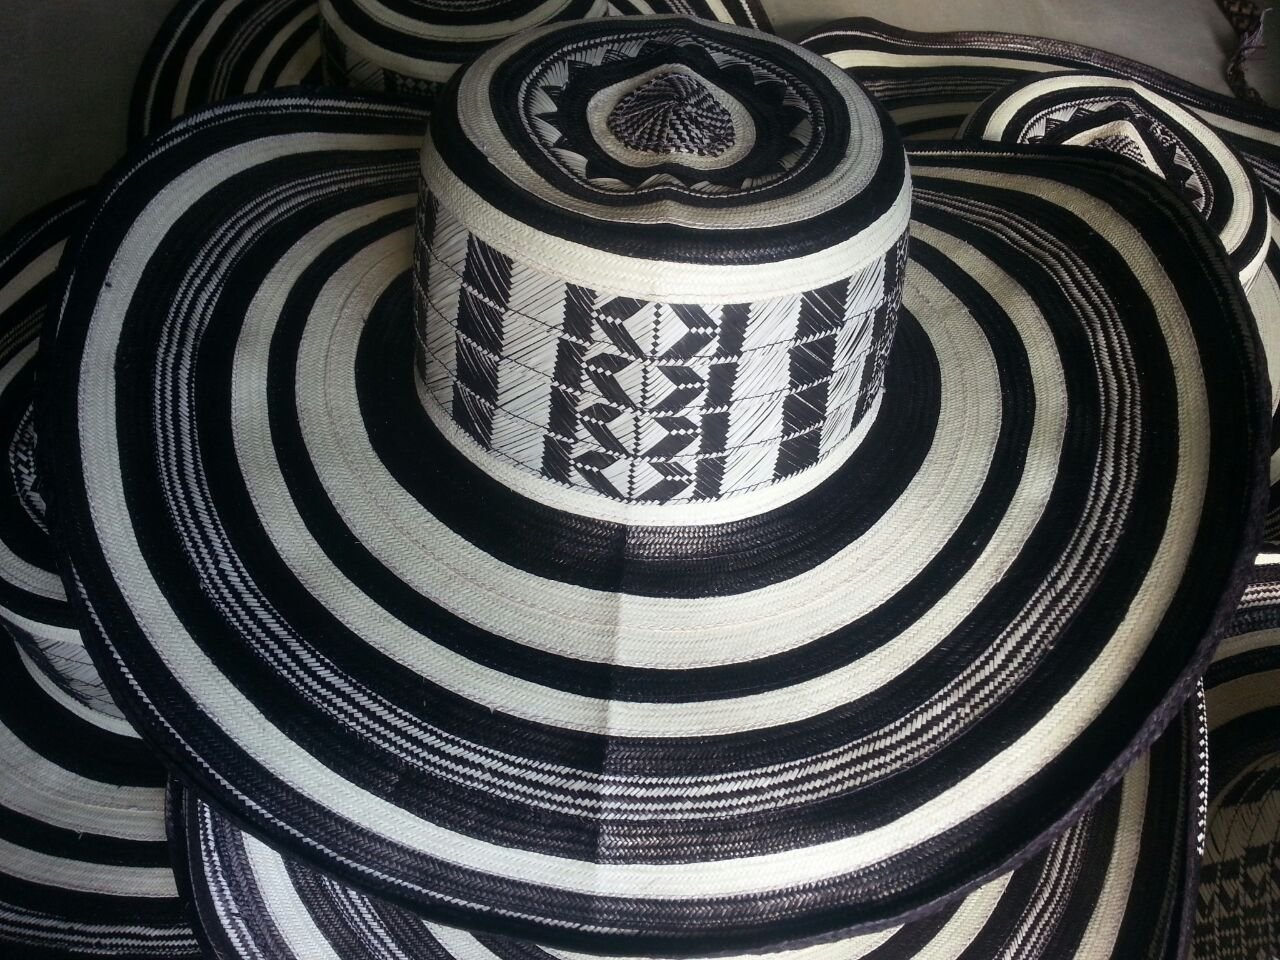 Amazon.com : Beautiful Colombian Sombrero Vueltiao Made By Colombian Artisans : Everything Else